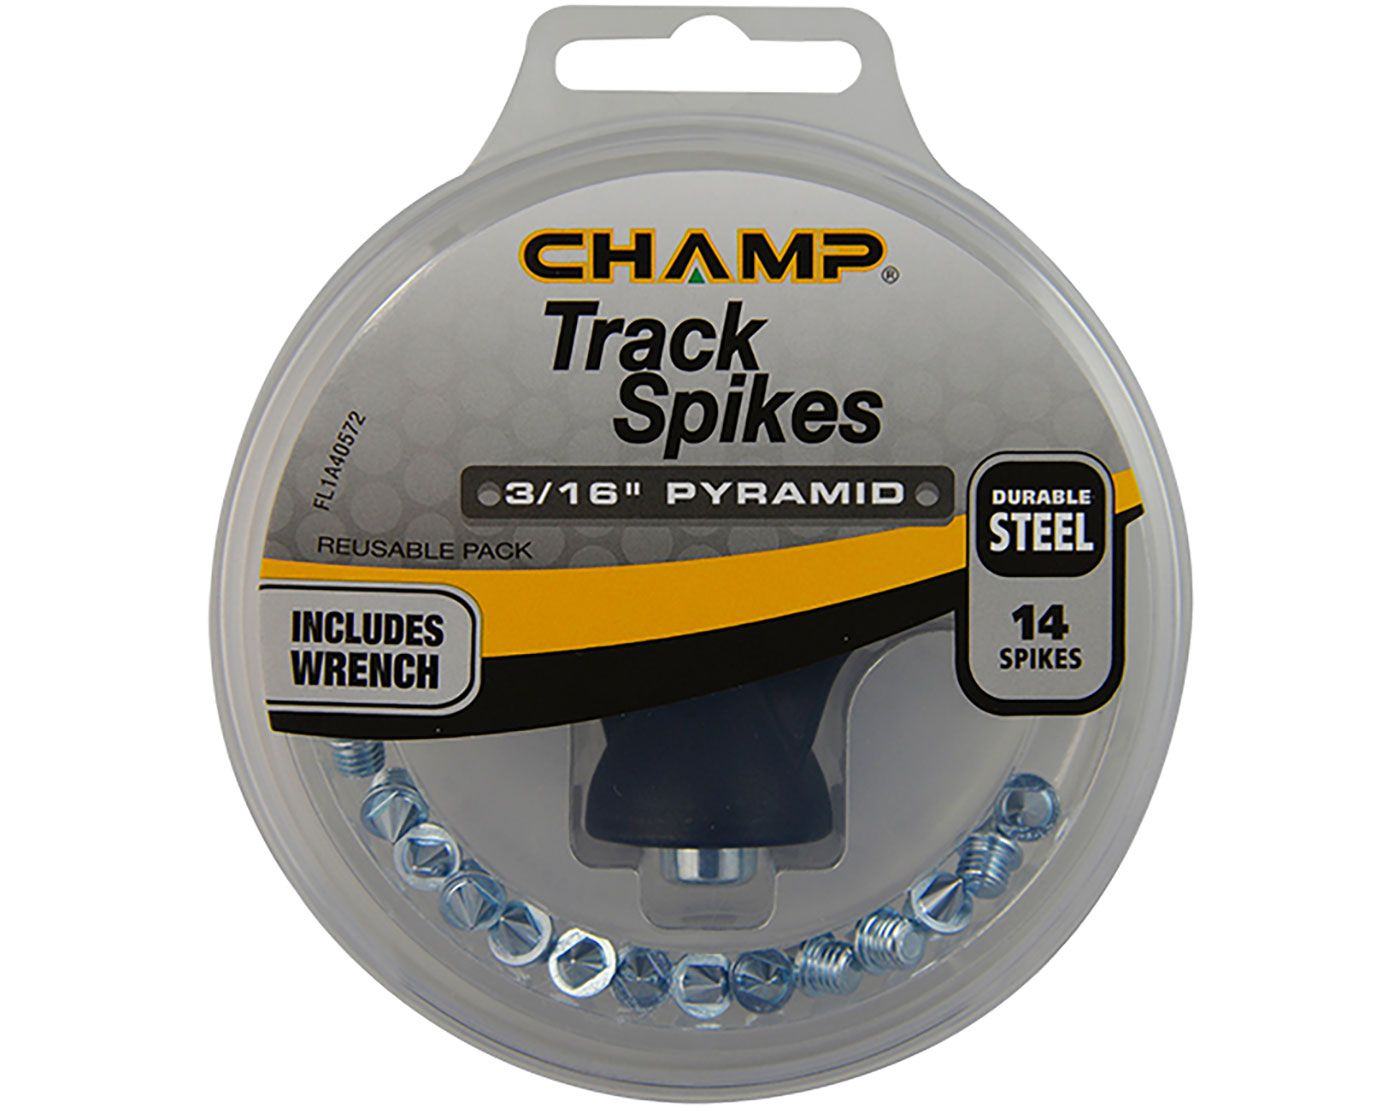 """CHAMP 3/16"""" Steel Pyramid Replacement Track Spikes"""